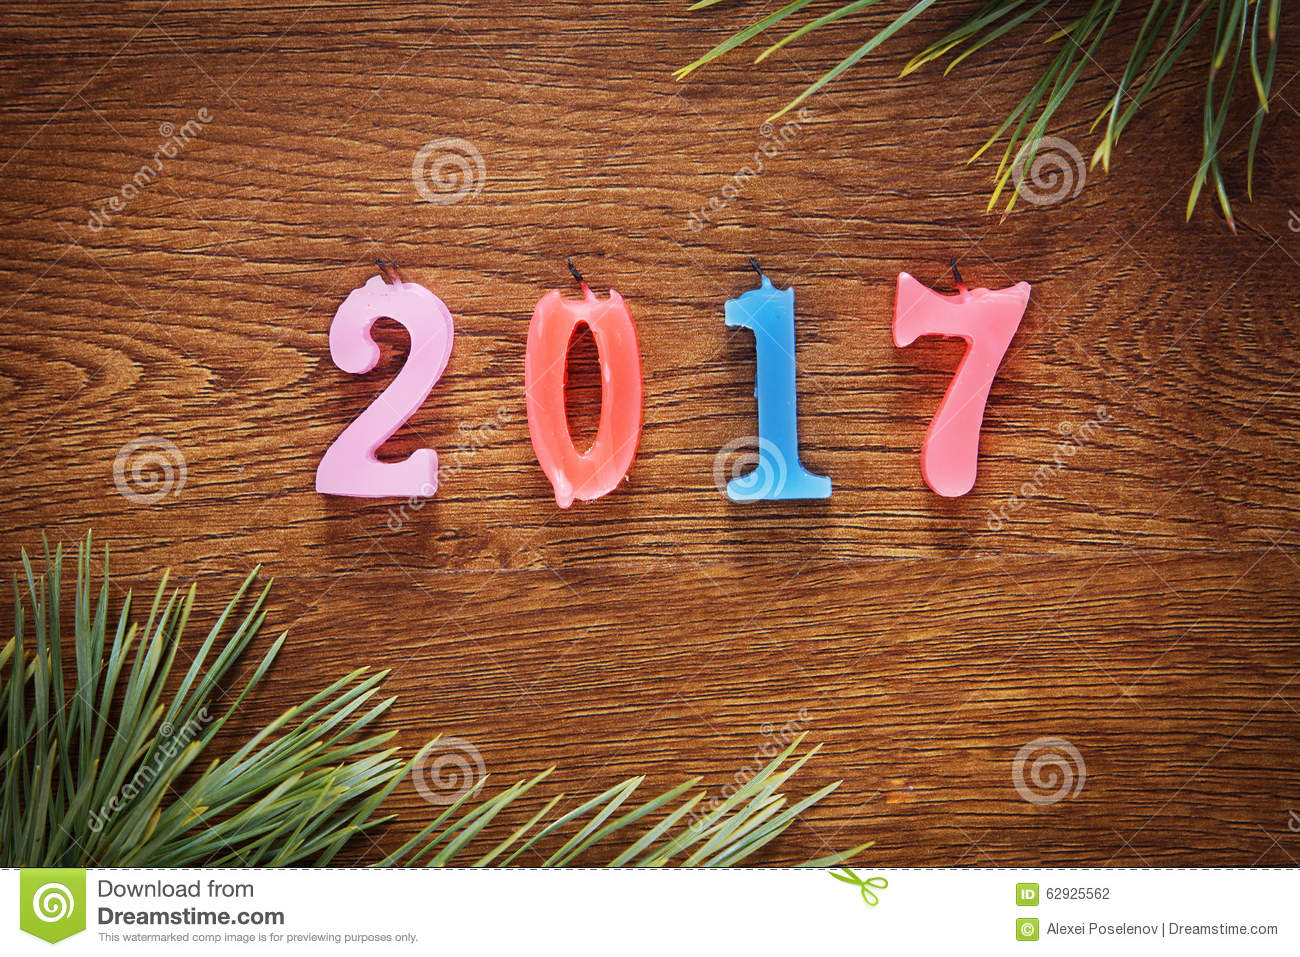 Background image 2017 - Wooden Brown Background About Happy New Year 2017 Stock Photography